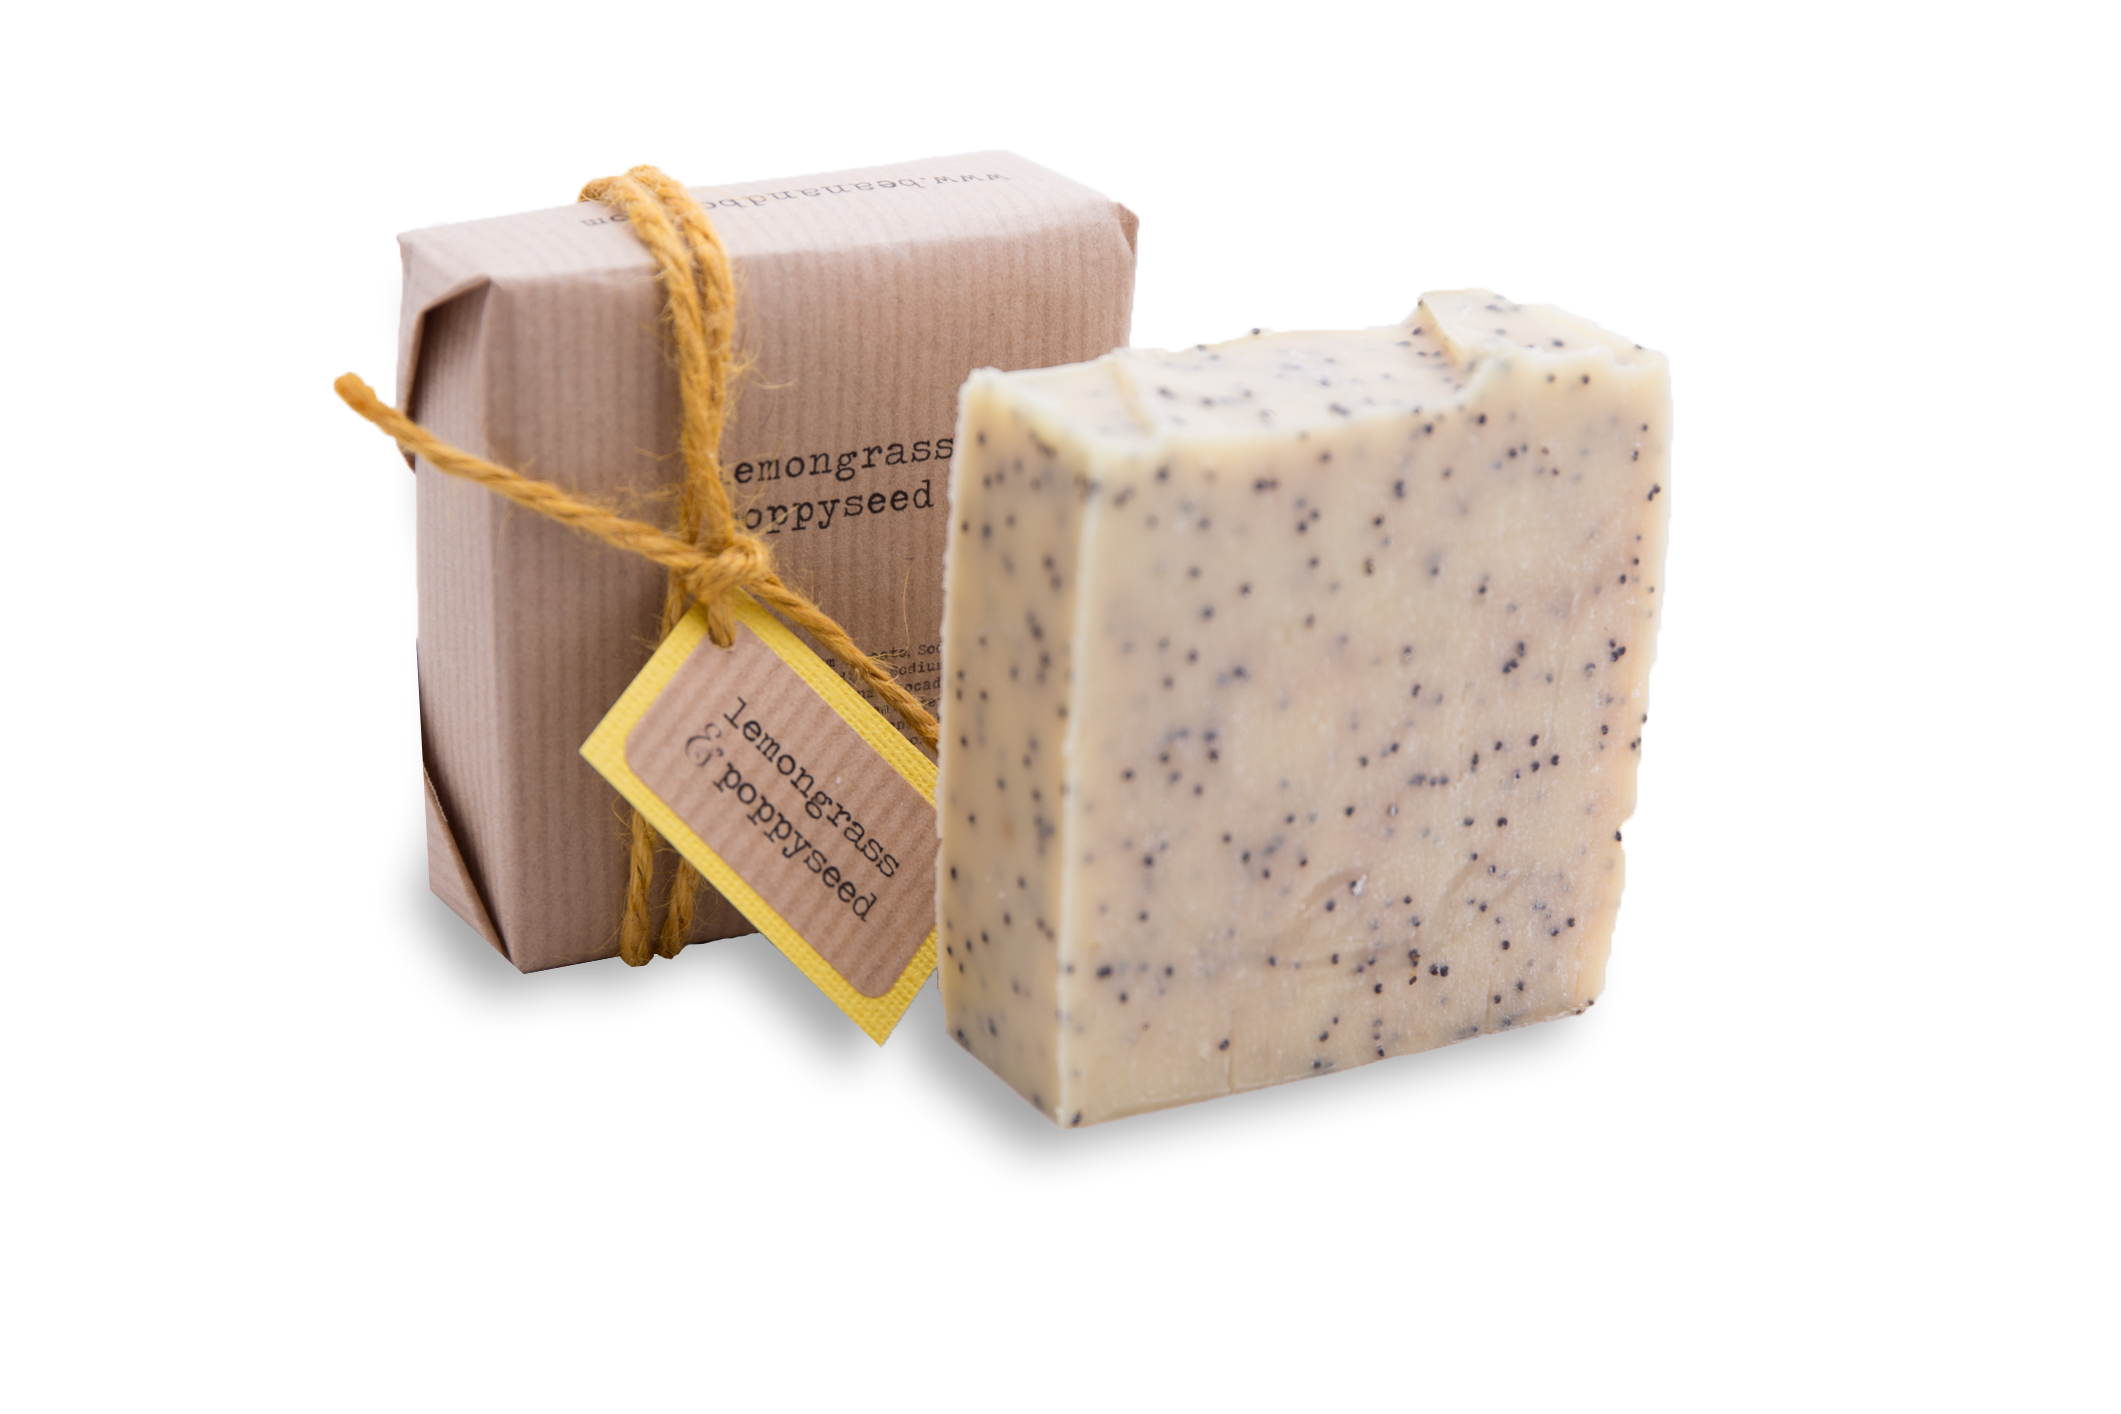 Lemongrass and Poppyseed Bean and Boy Soap